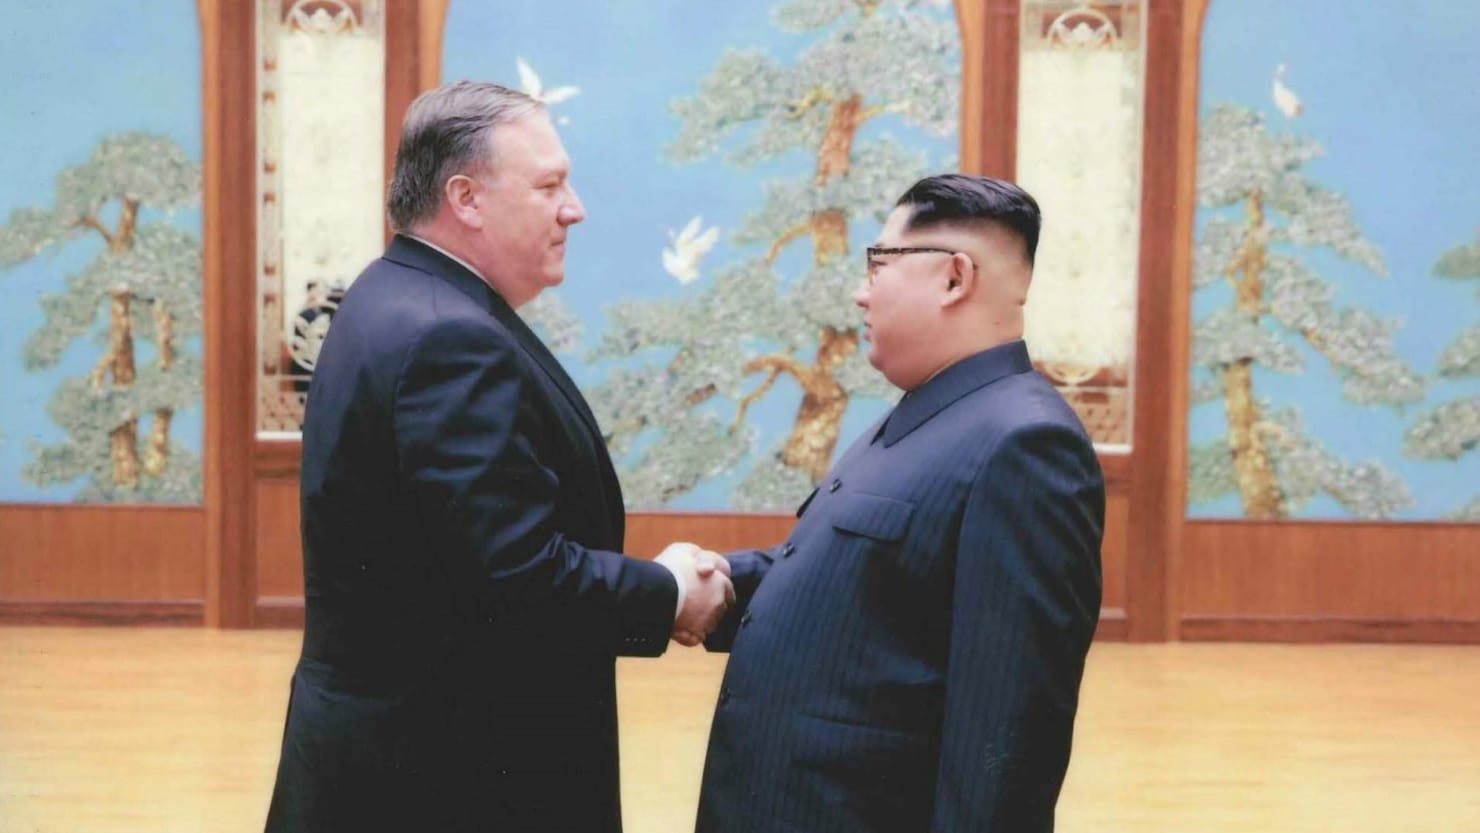 Kim Jong Un is breaking agreement with US